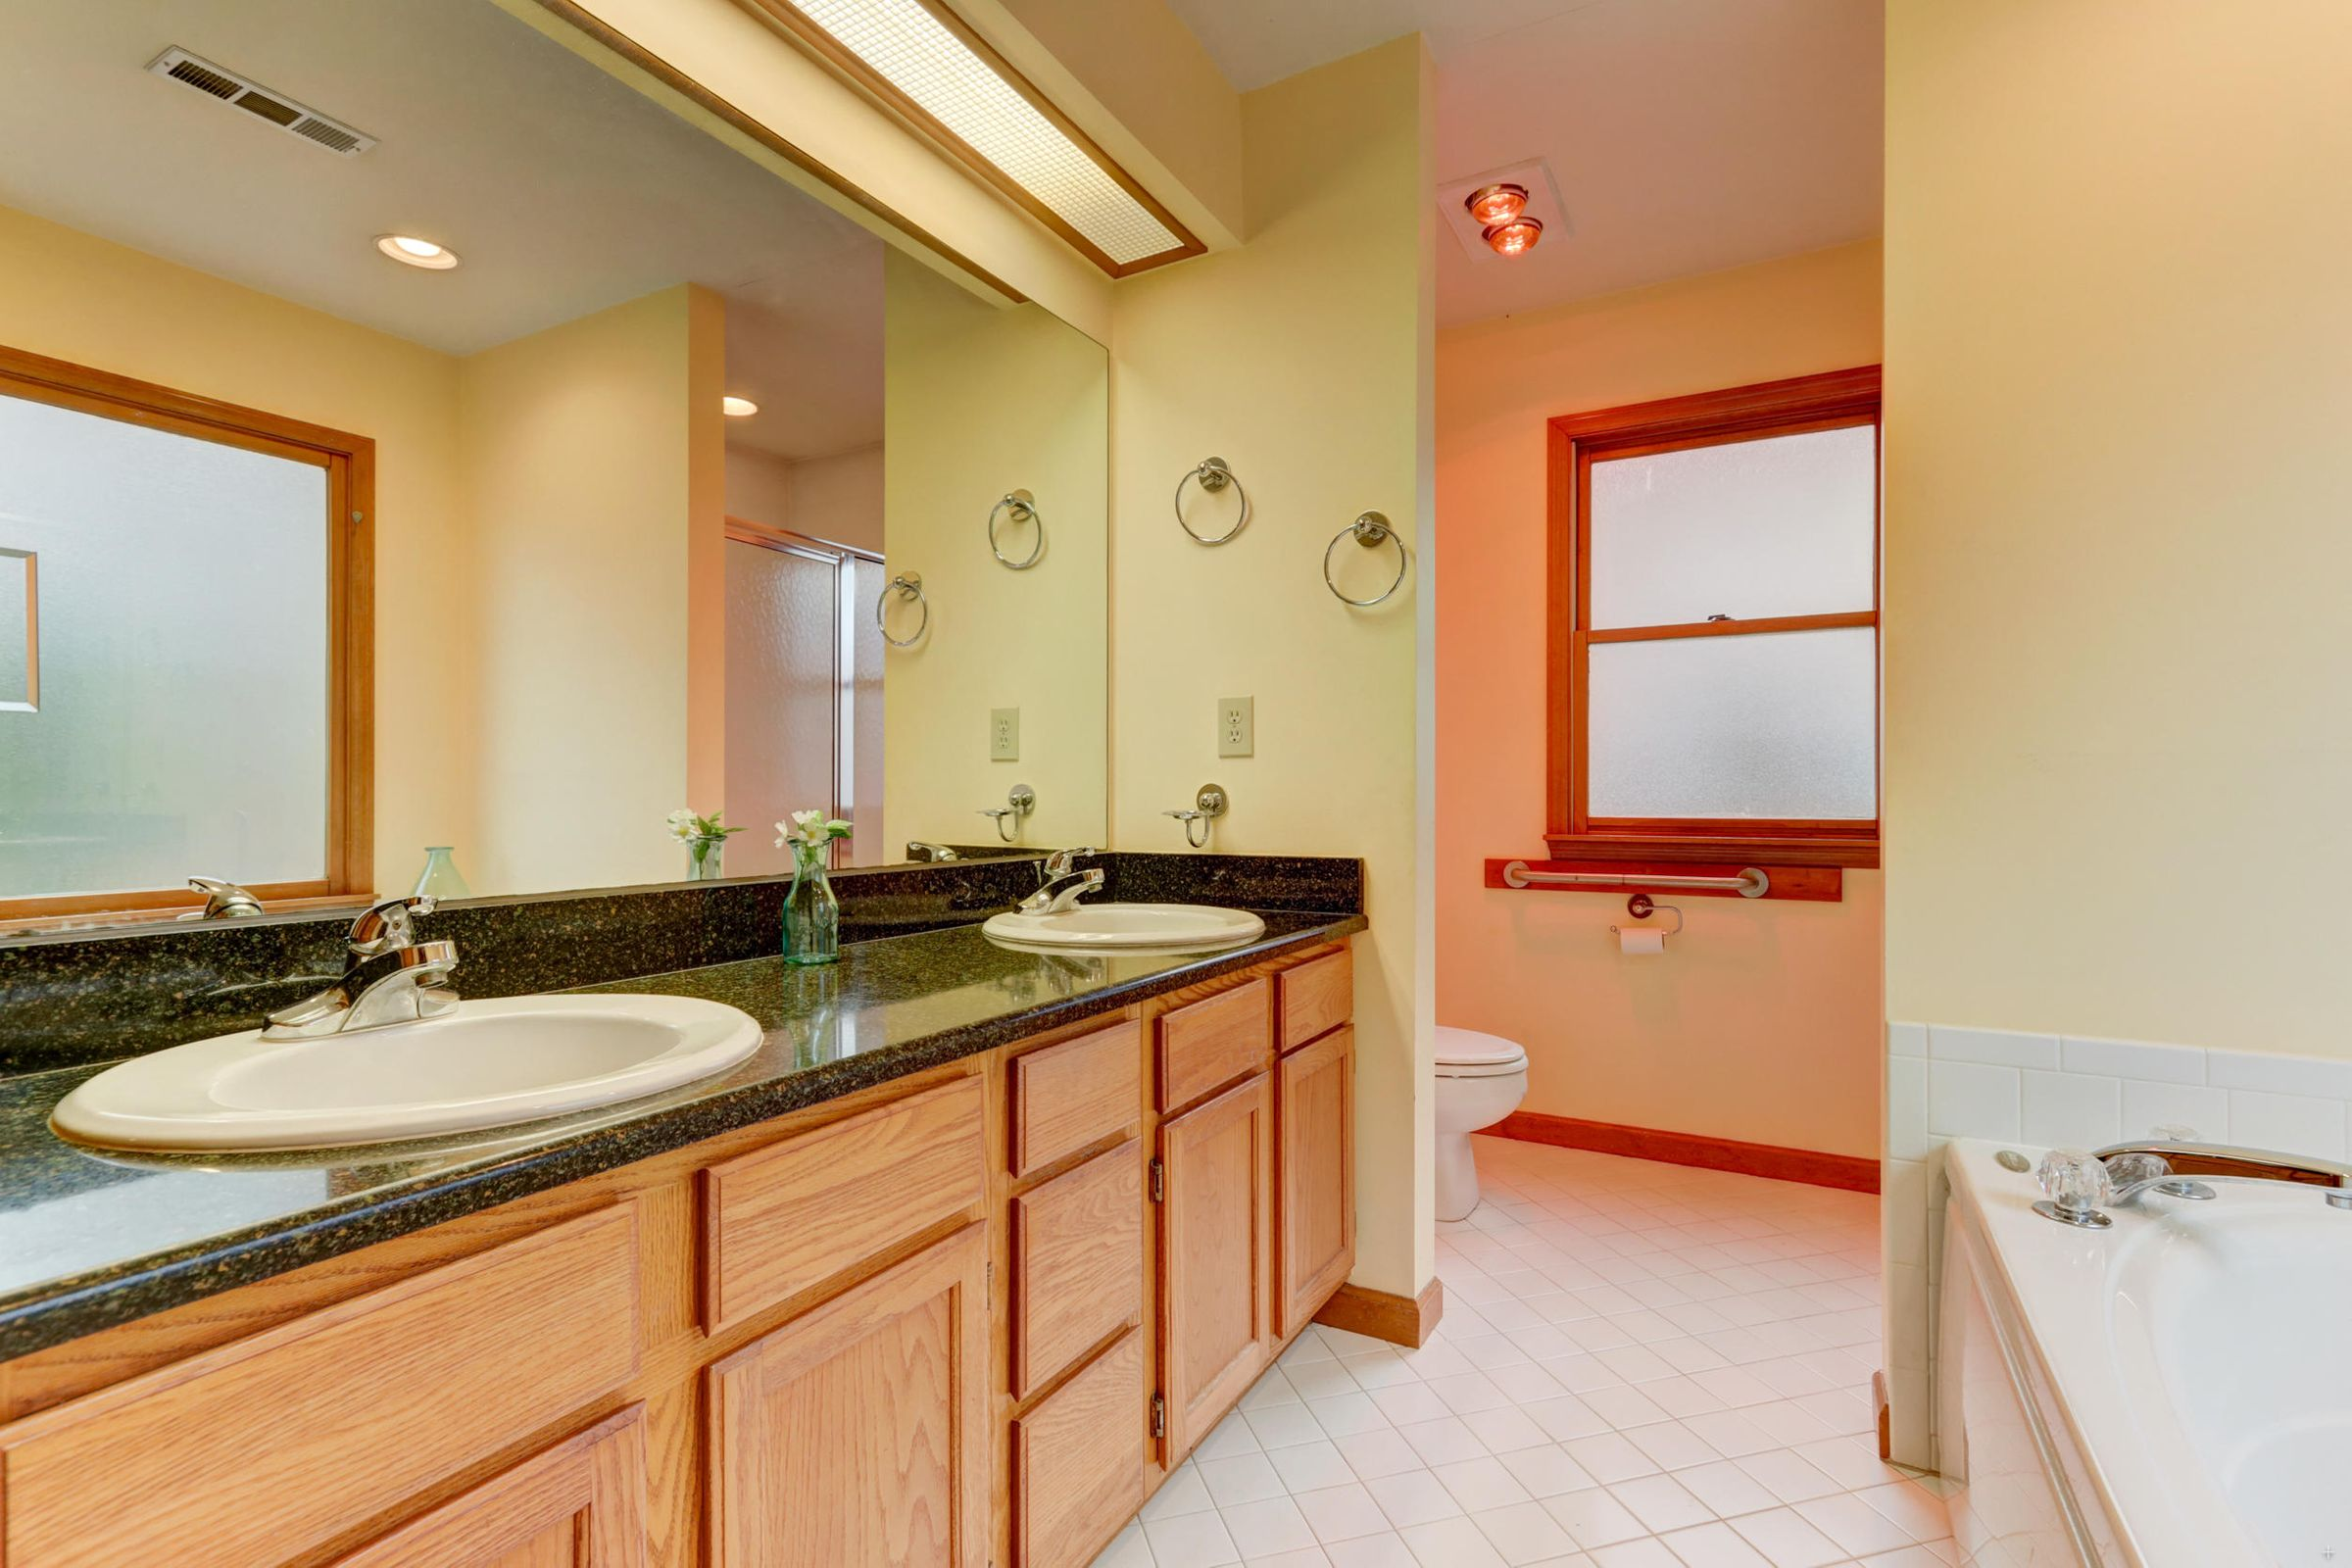 Master double vanity & step-in shower